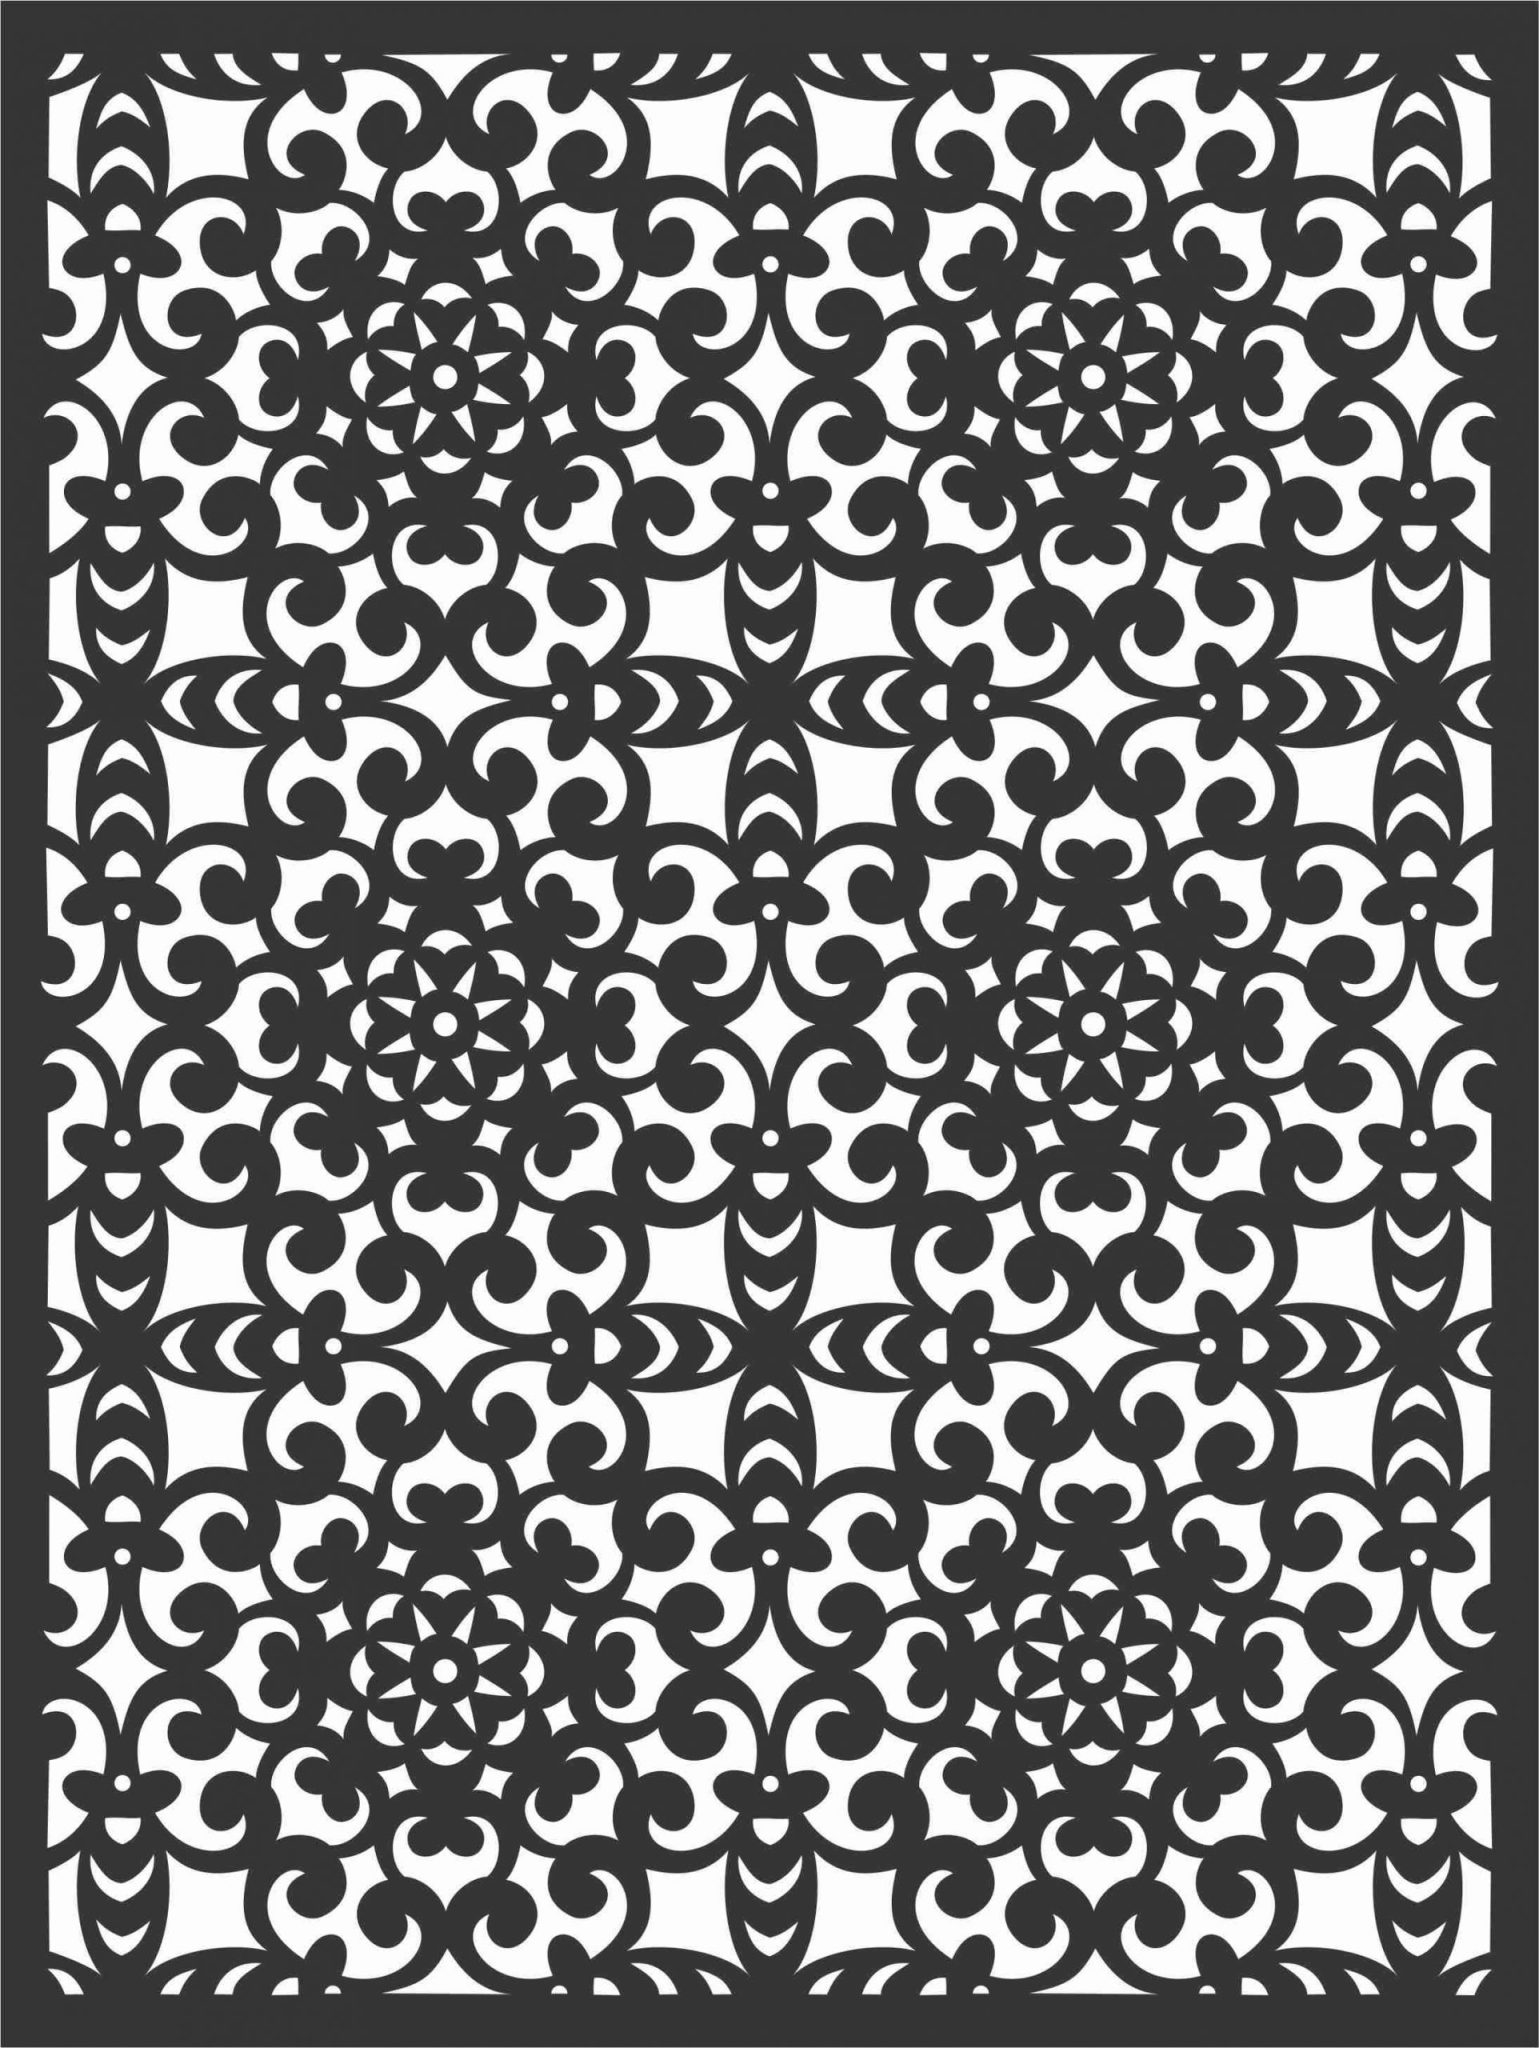 Floral Screen Patterns Design 8 Free DXF File